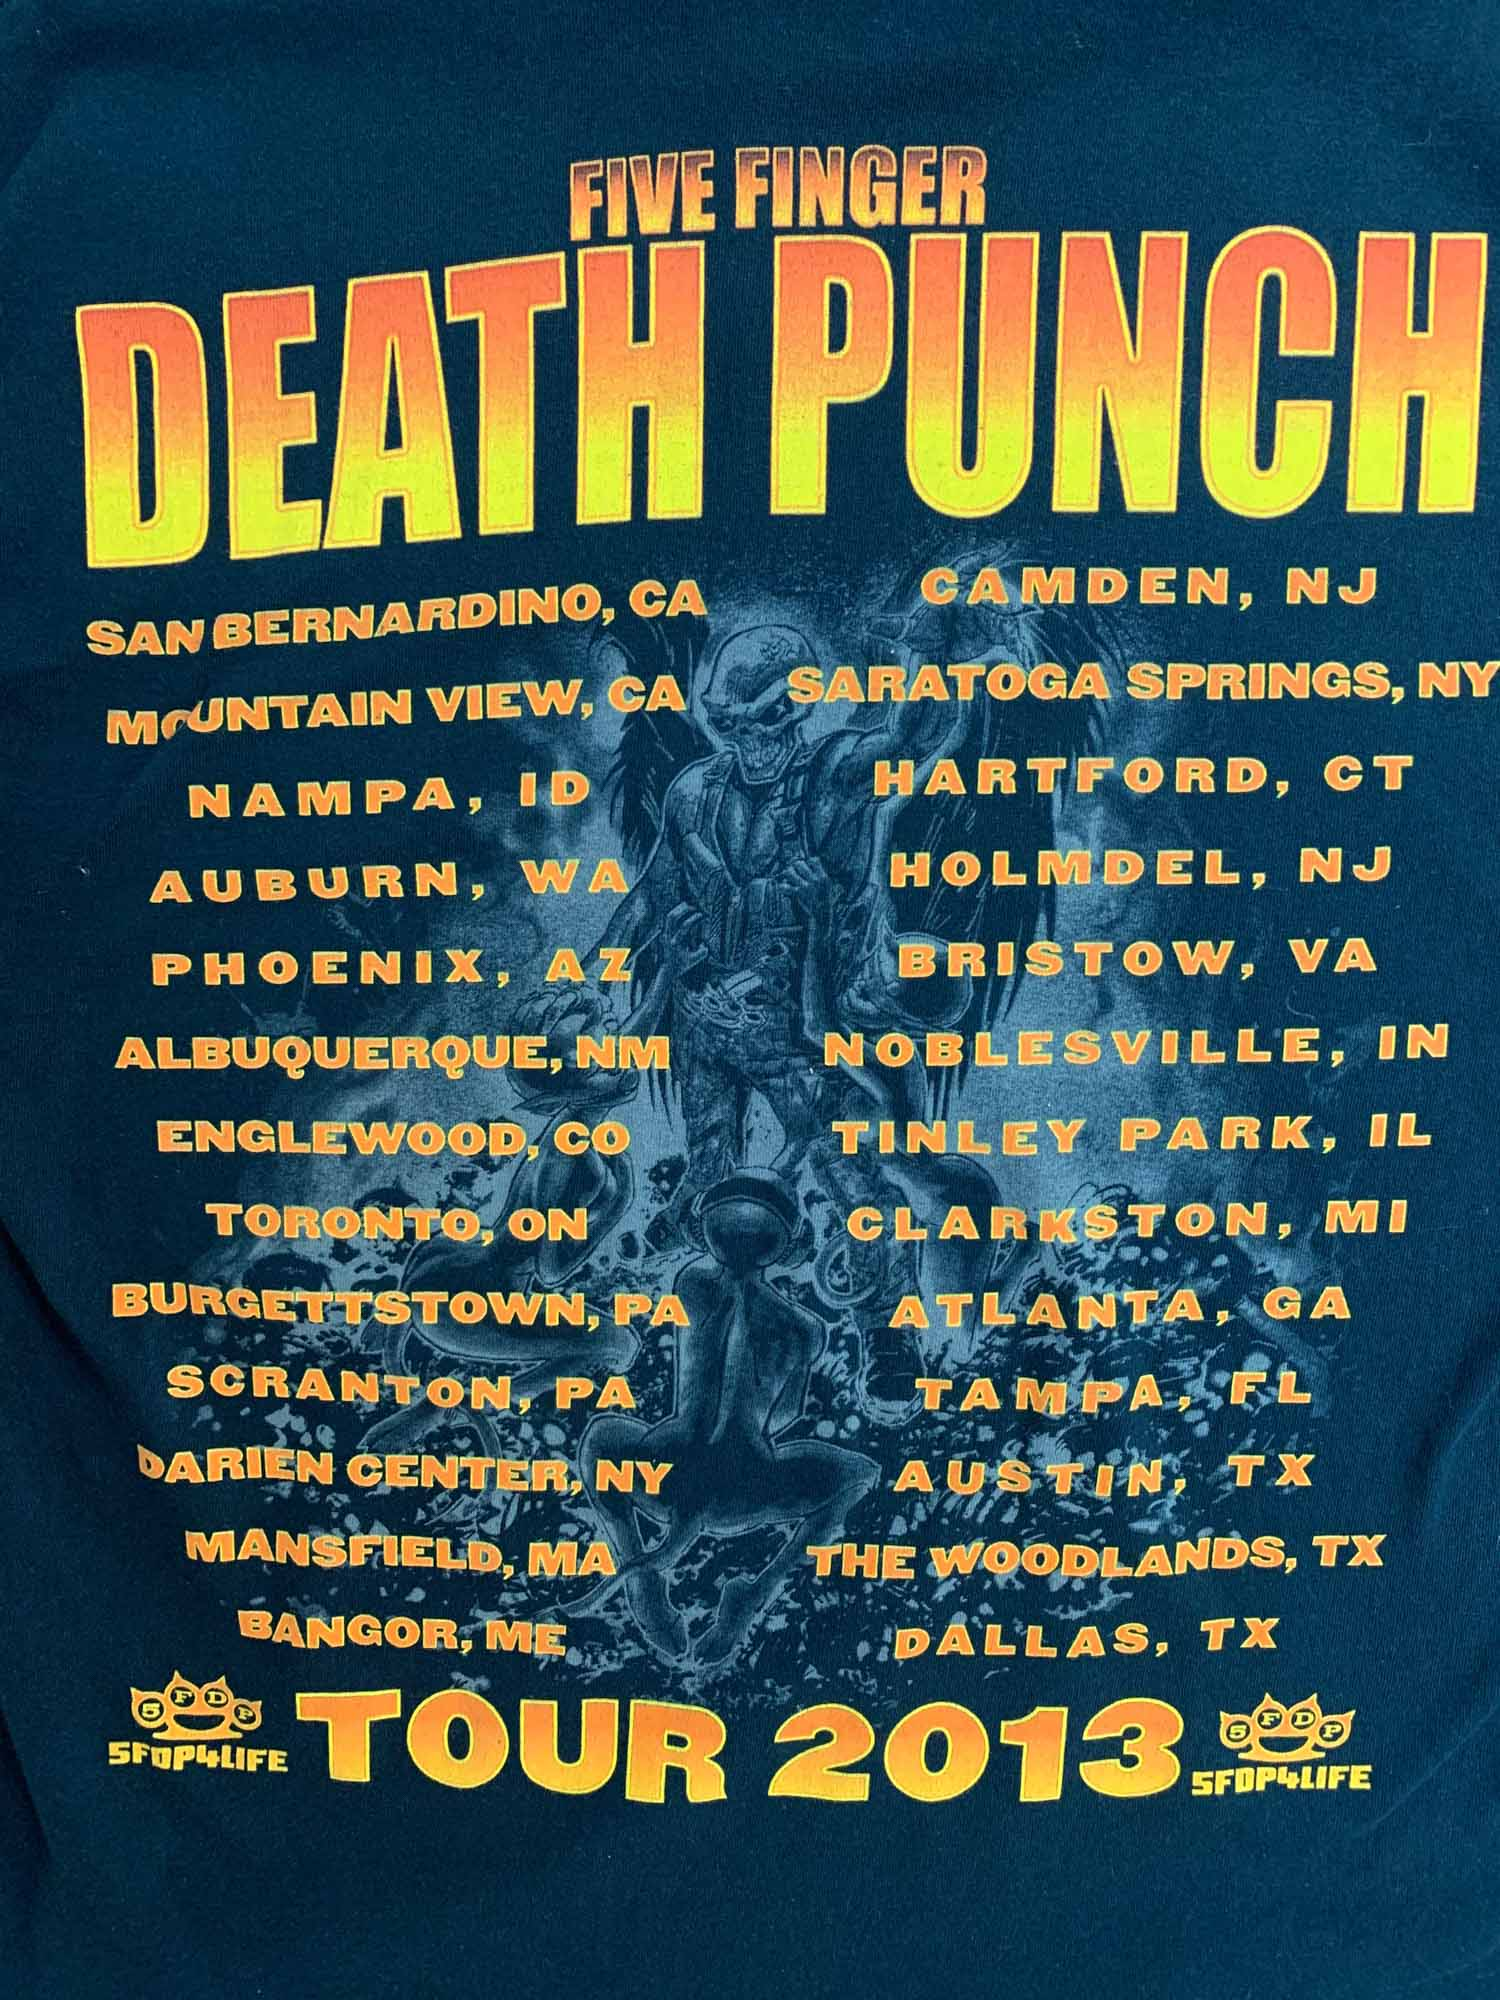 FIVE FINGER DEATH PINCH BAND TEE